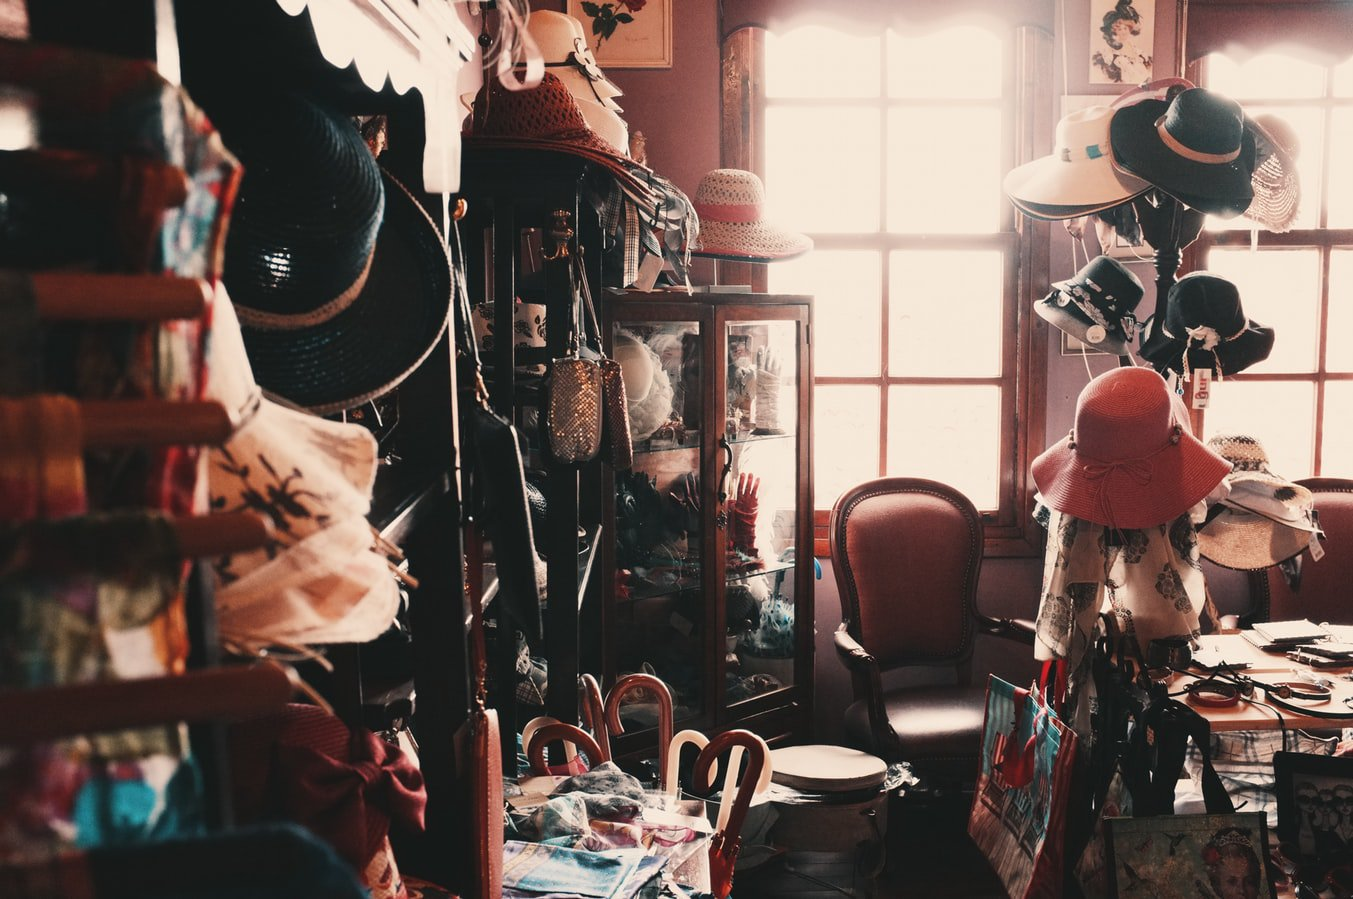 A messy closet. It is important to know how to declutter a home before moving to an assisted living facility